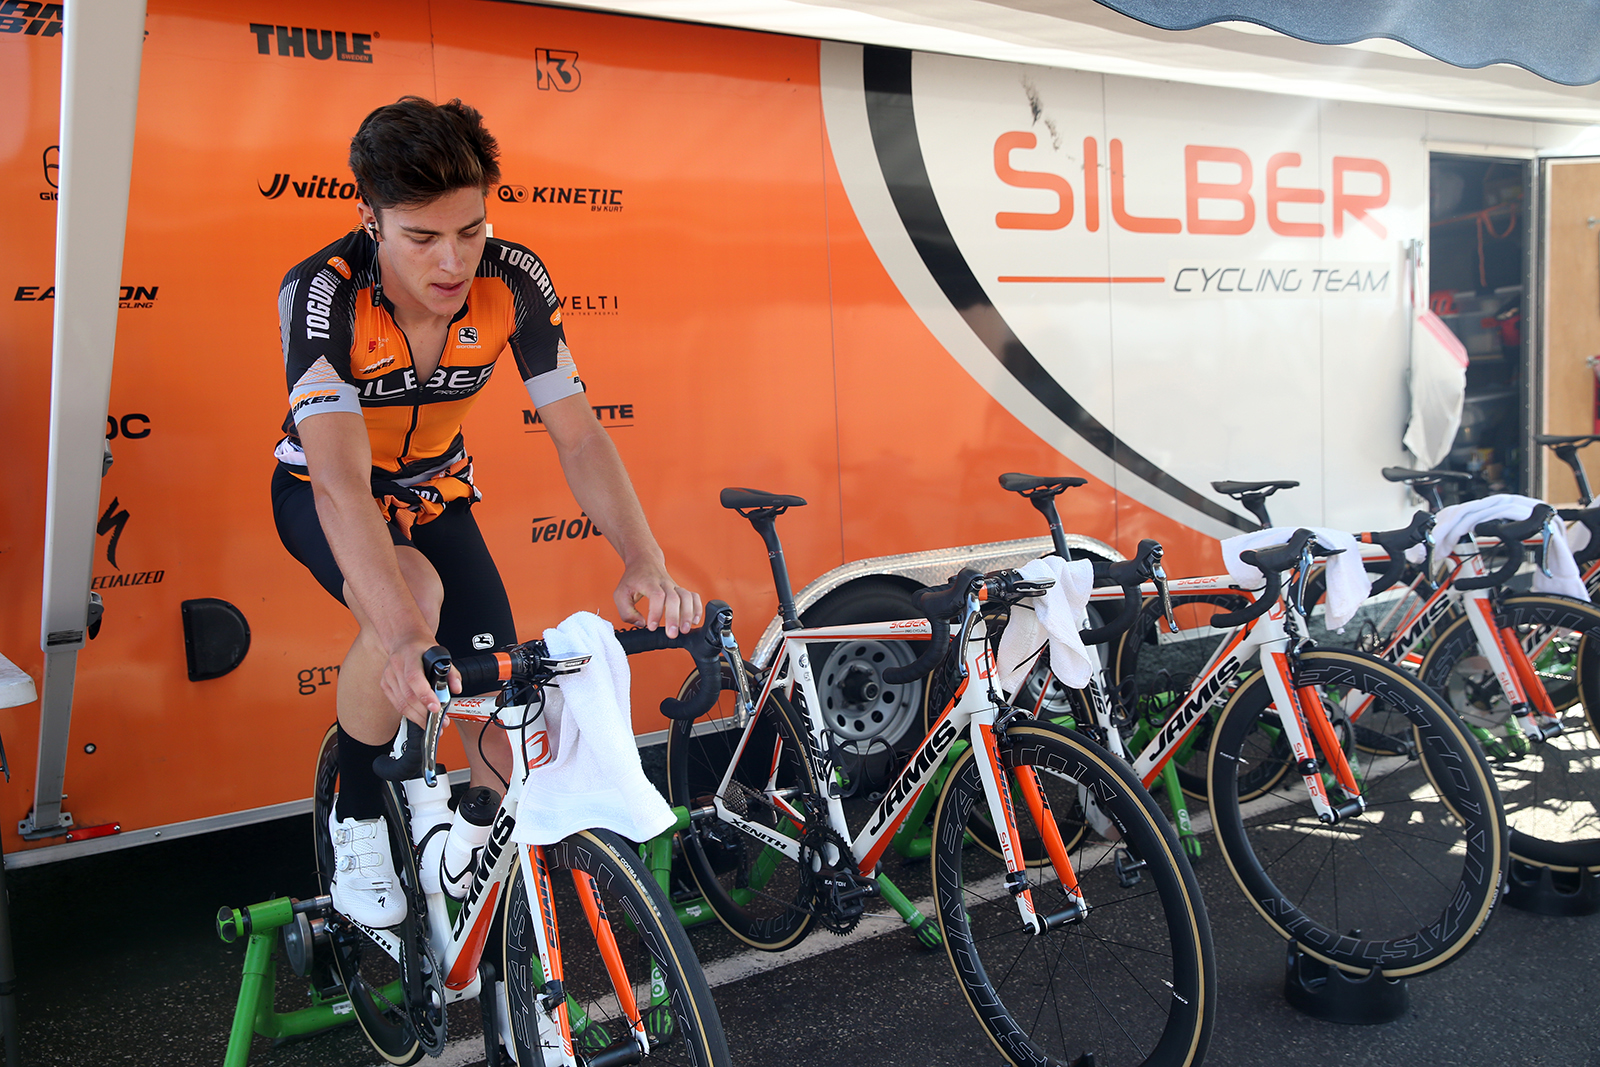 Warm up. 2018 Tour of Utah Team Prologue, August 6, 2018, St. George, Utah. Photo by Cathy Fegan-Kim, cottonsoxphotography.net